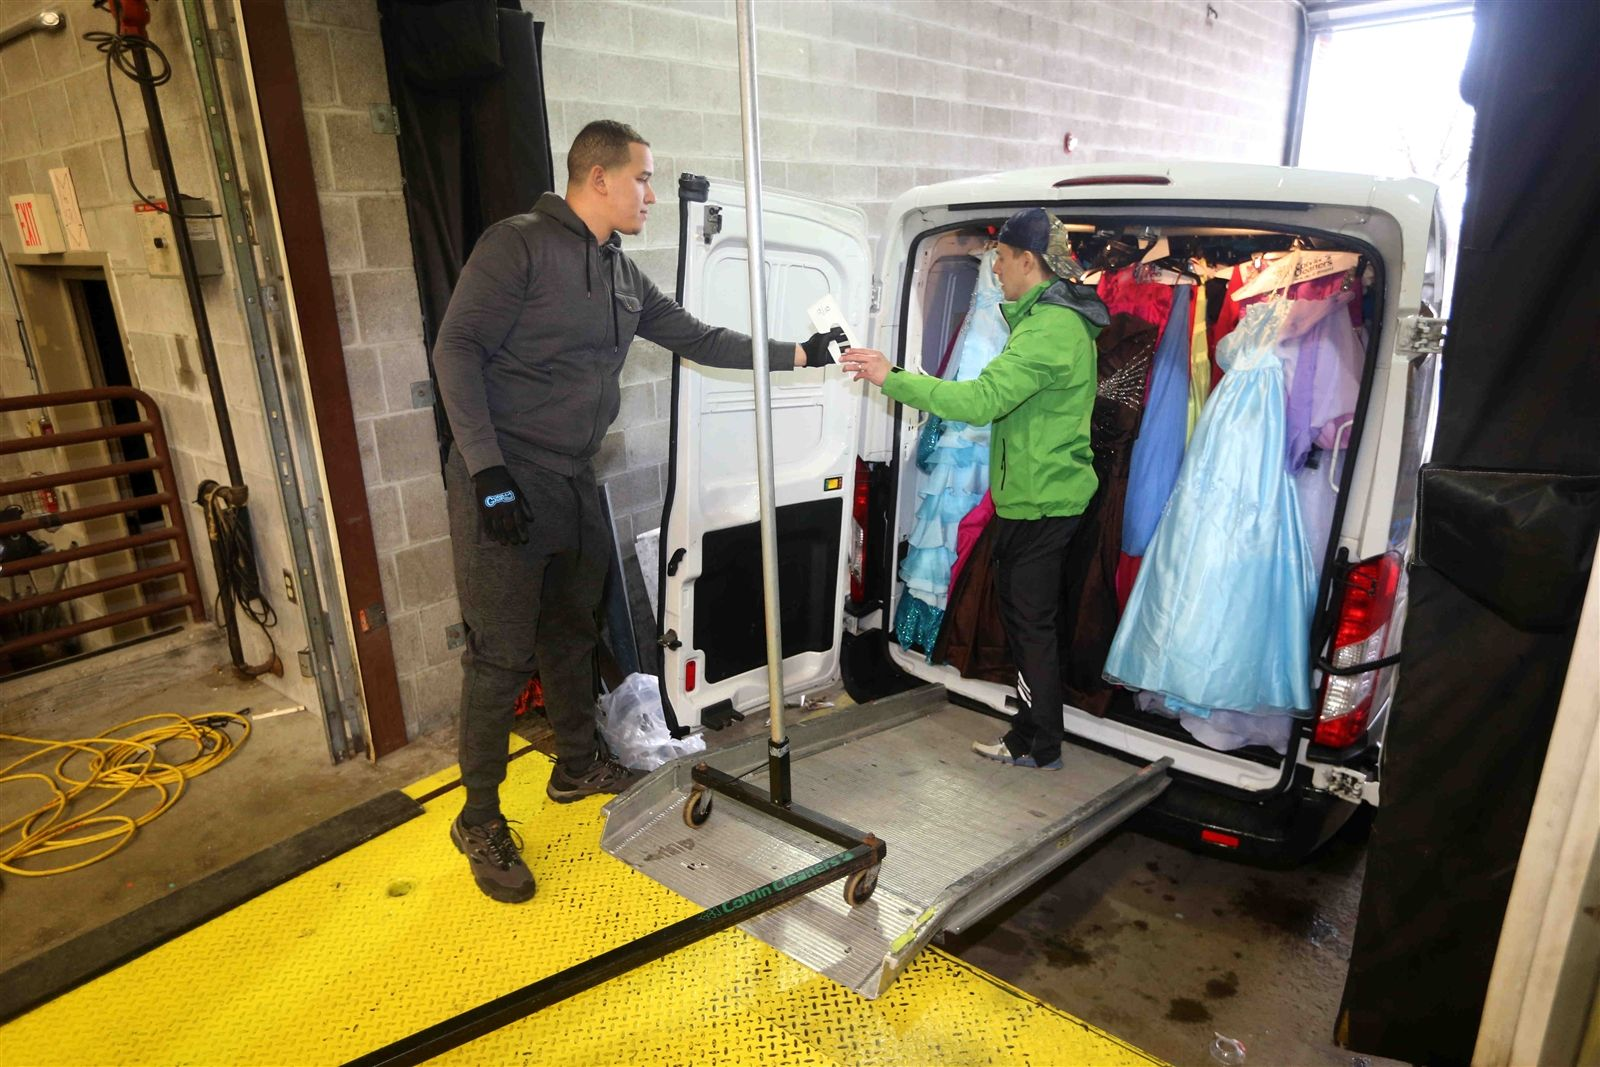 Plinio Calcano and Chris Billoni from Colvin Cleaners unload gowns from a truck at Shea's.